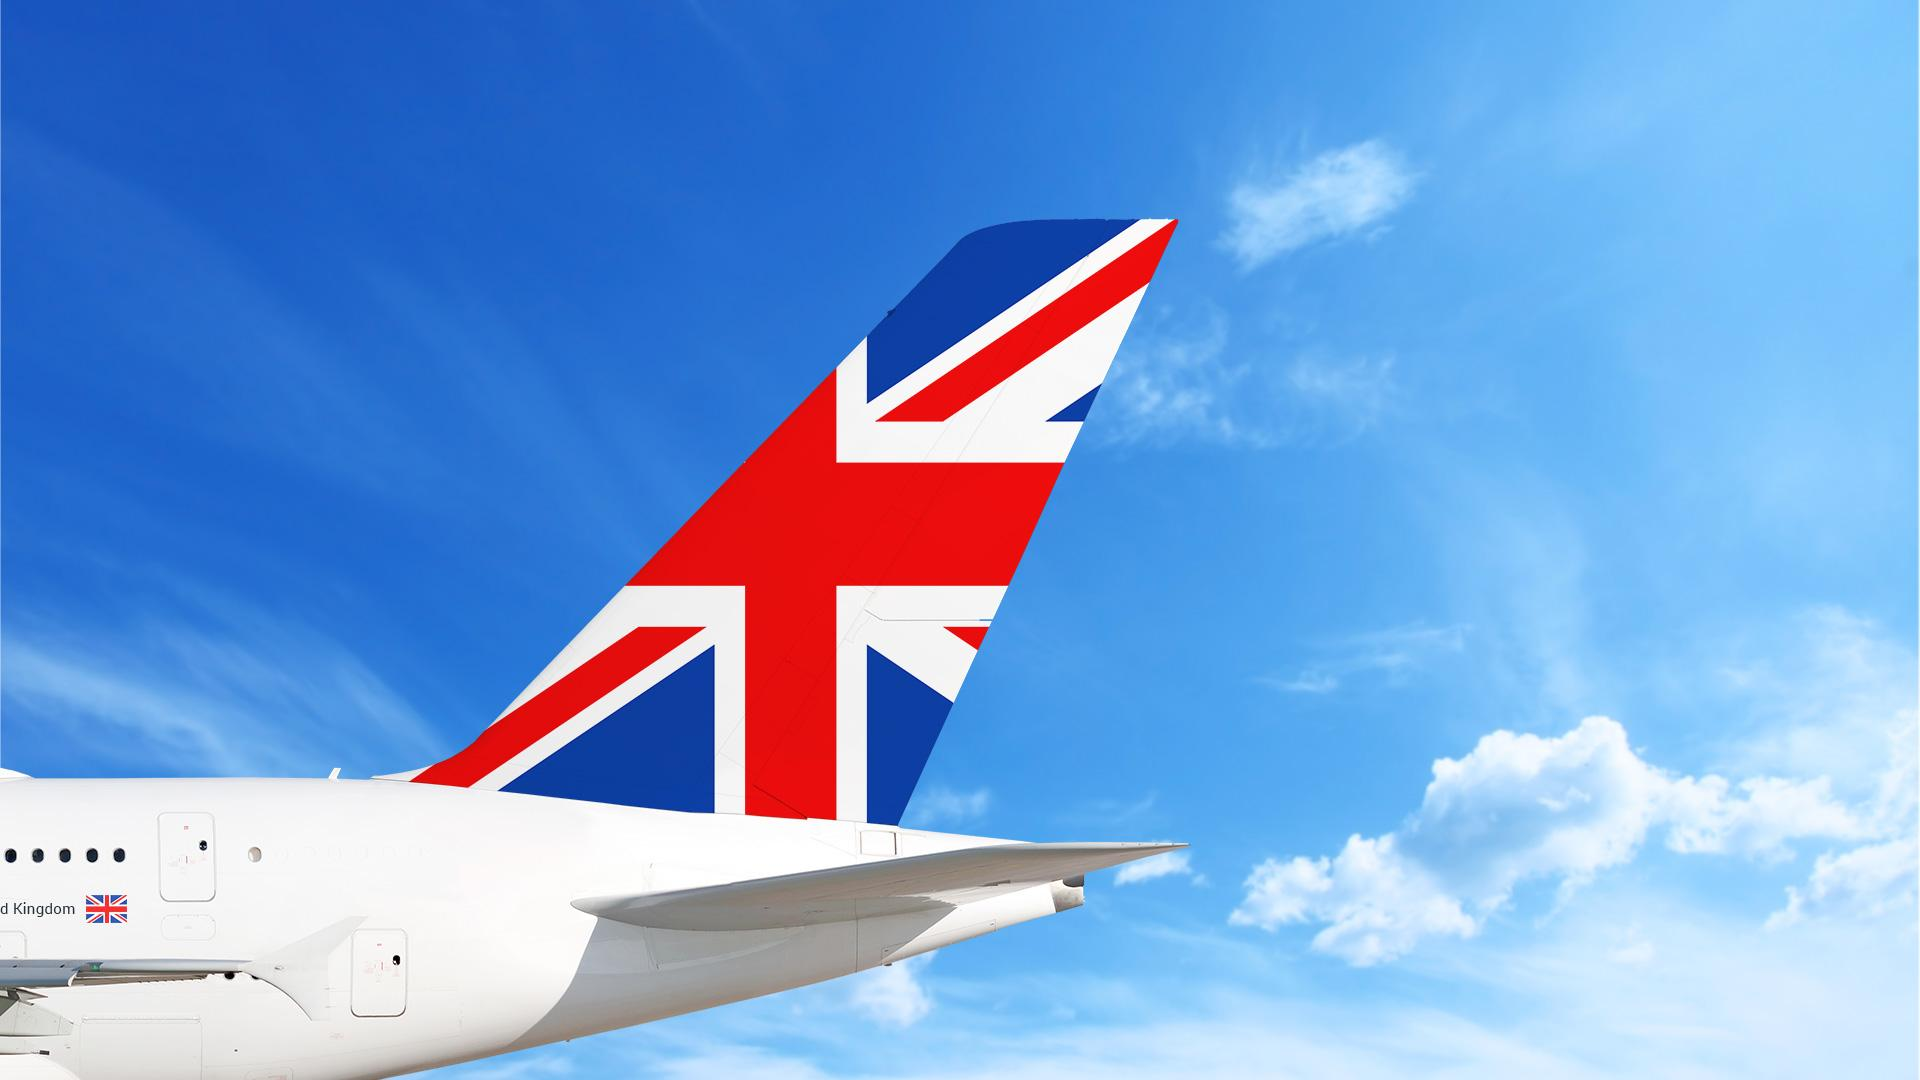 Airplane with Union Jack Flag (UK) on the tail